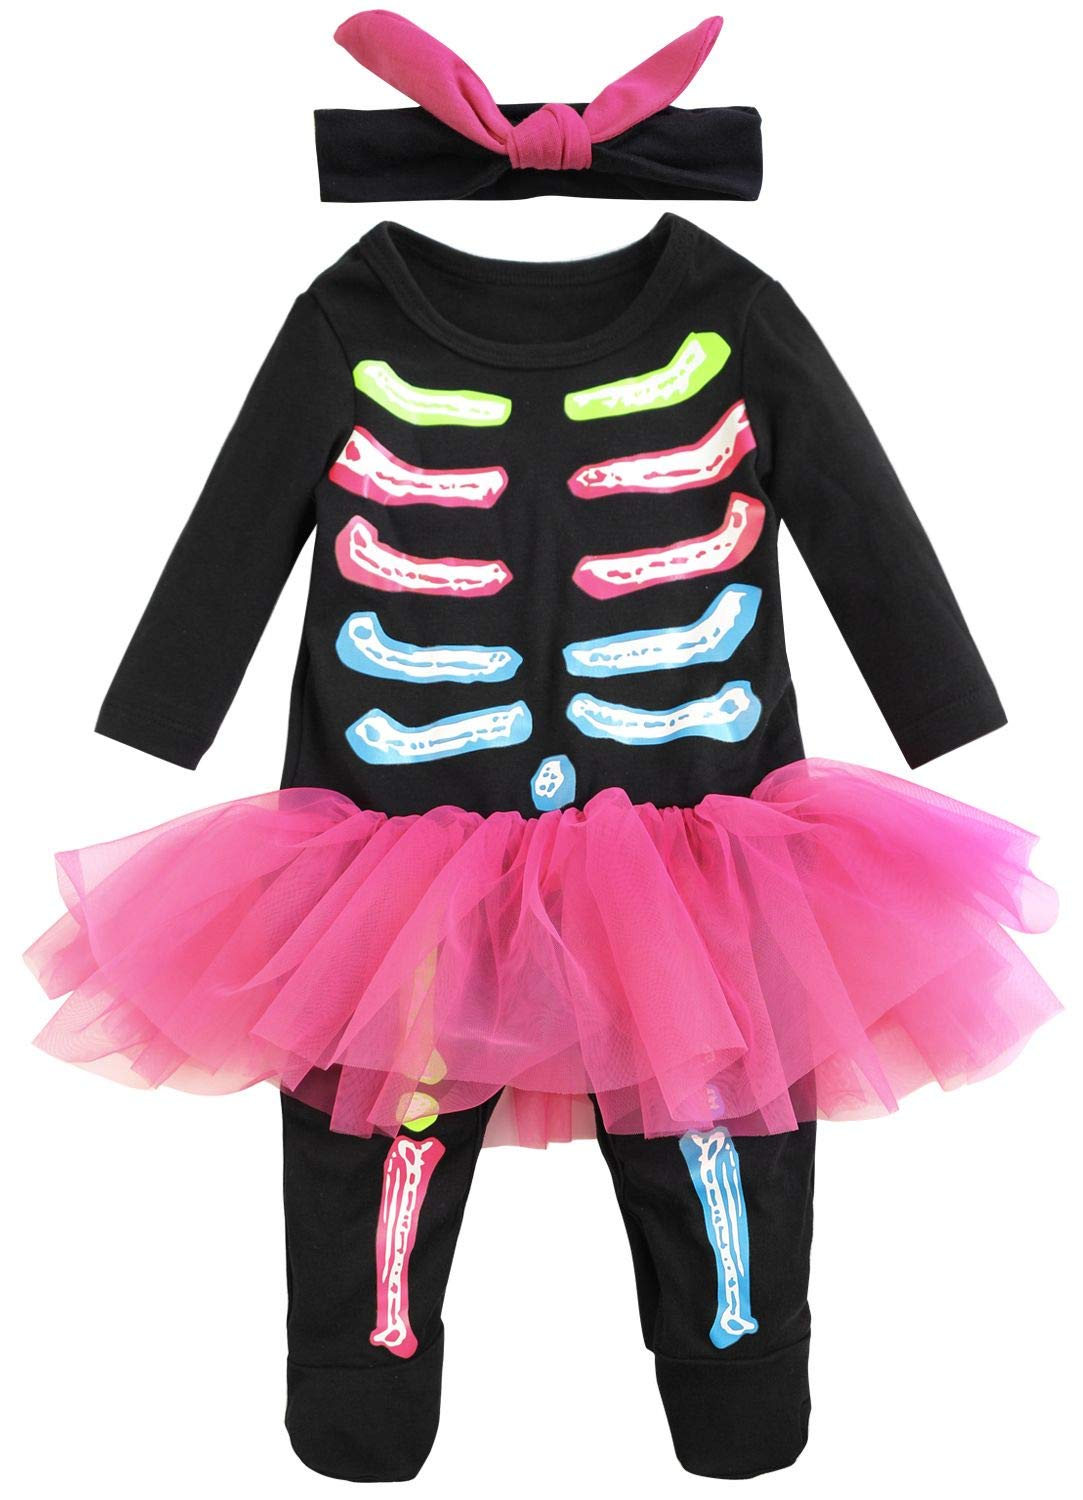 FANCYINN Infant Baby Girl' 1st Halloween Costume Bone Skull Tutu Romper with Headband 80